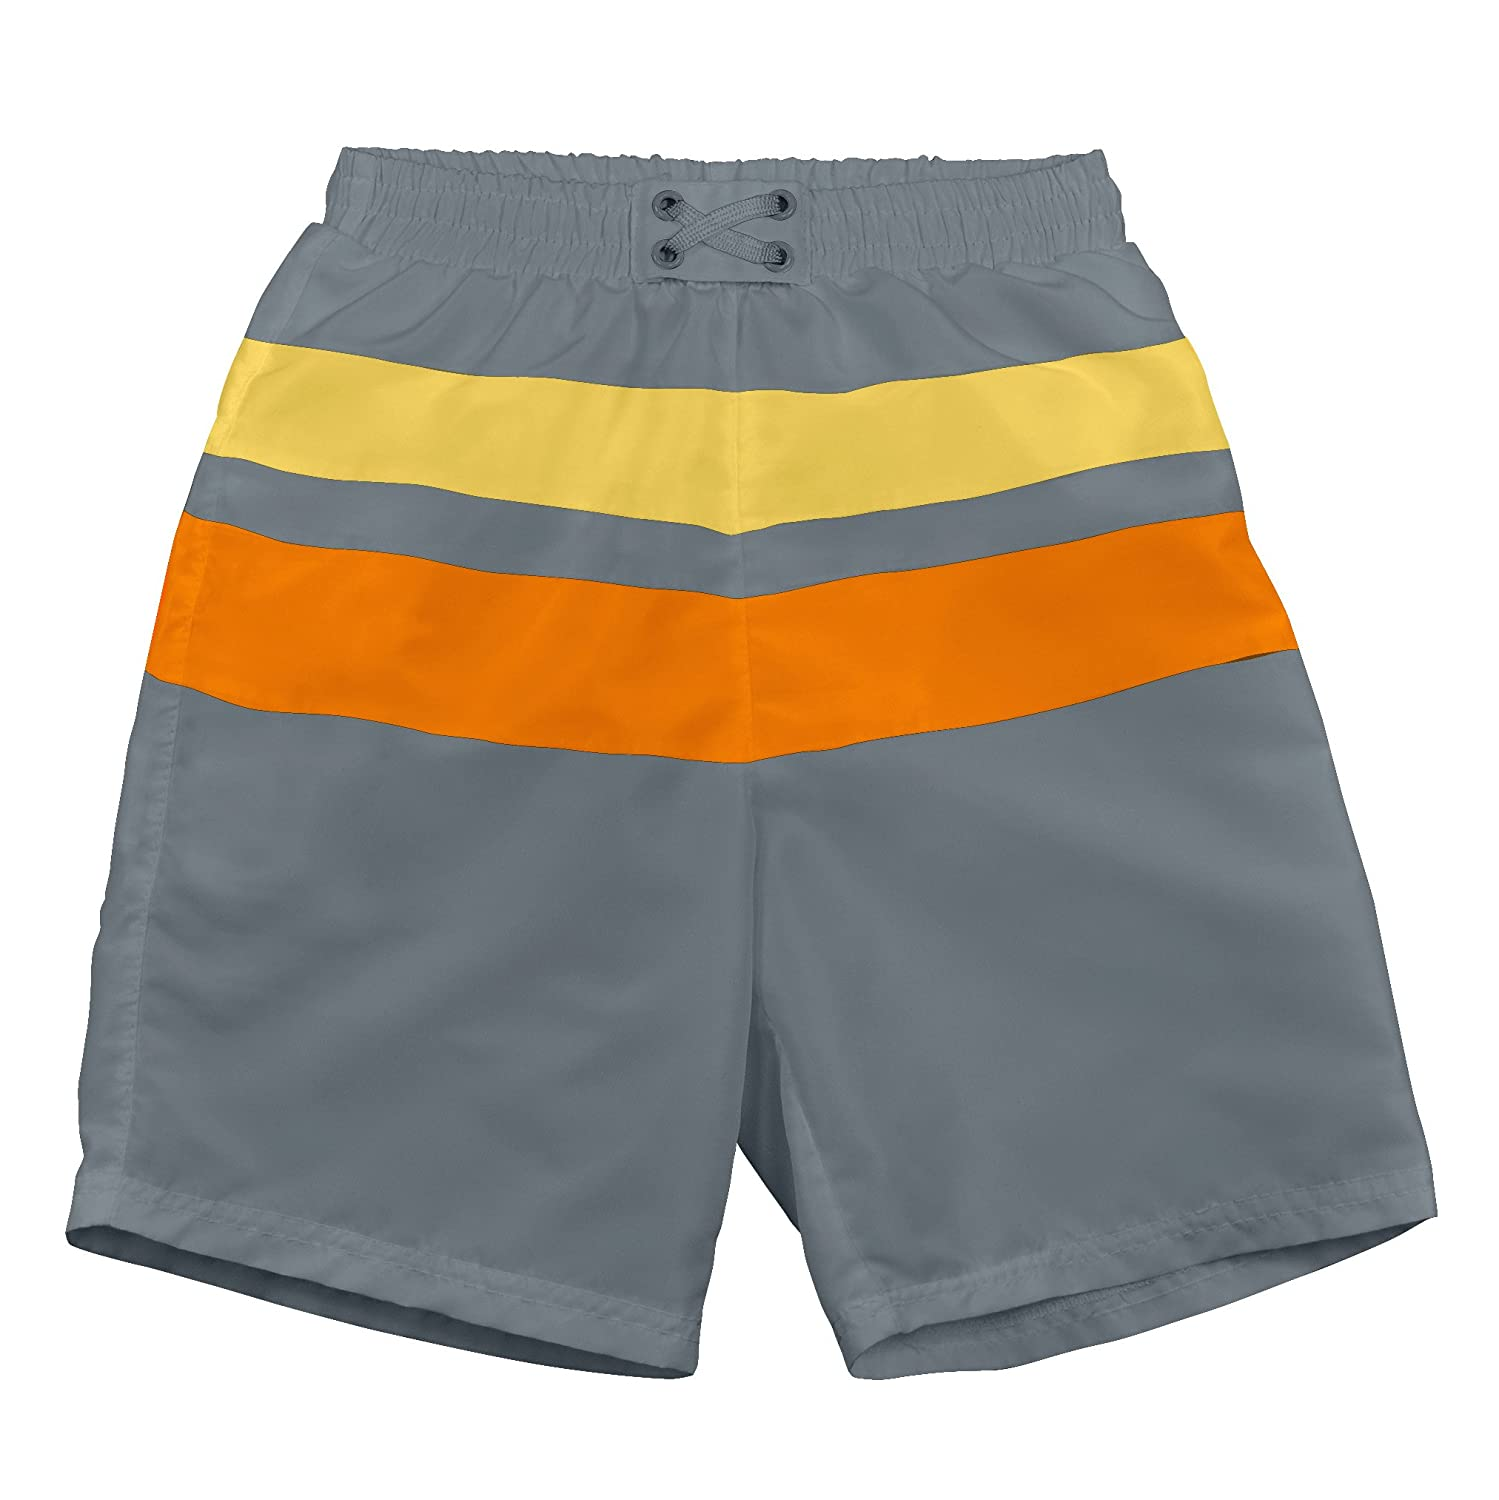 I-Play. Baby Boys' Colorblock Trunks with Built-In Reusable Absorbent Swim Diaper i play Children' s Apparel 722113